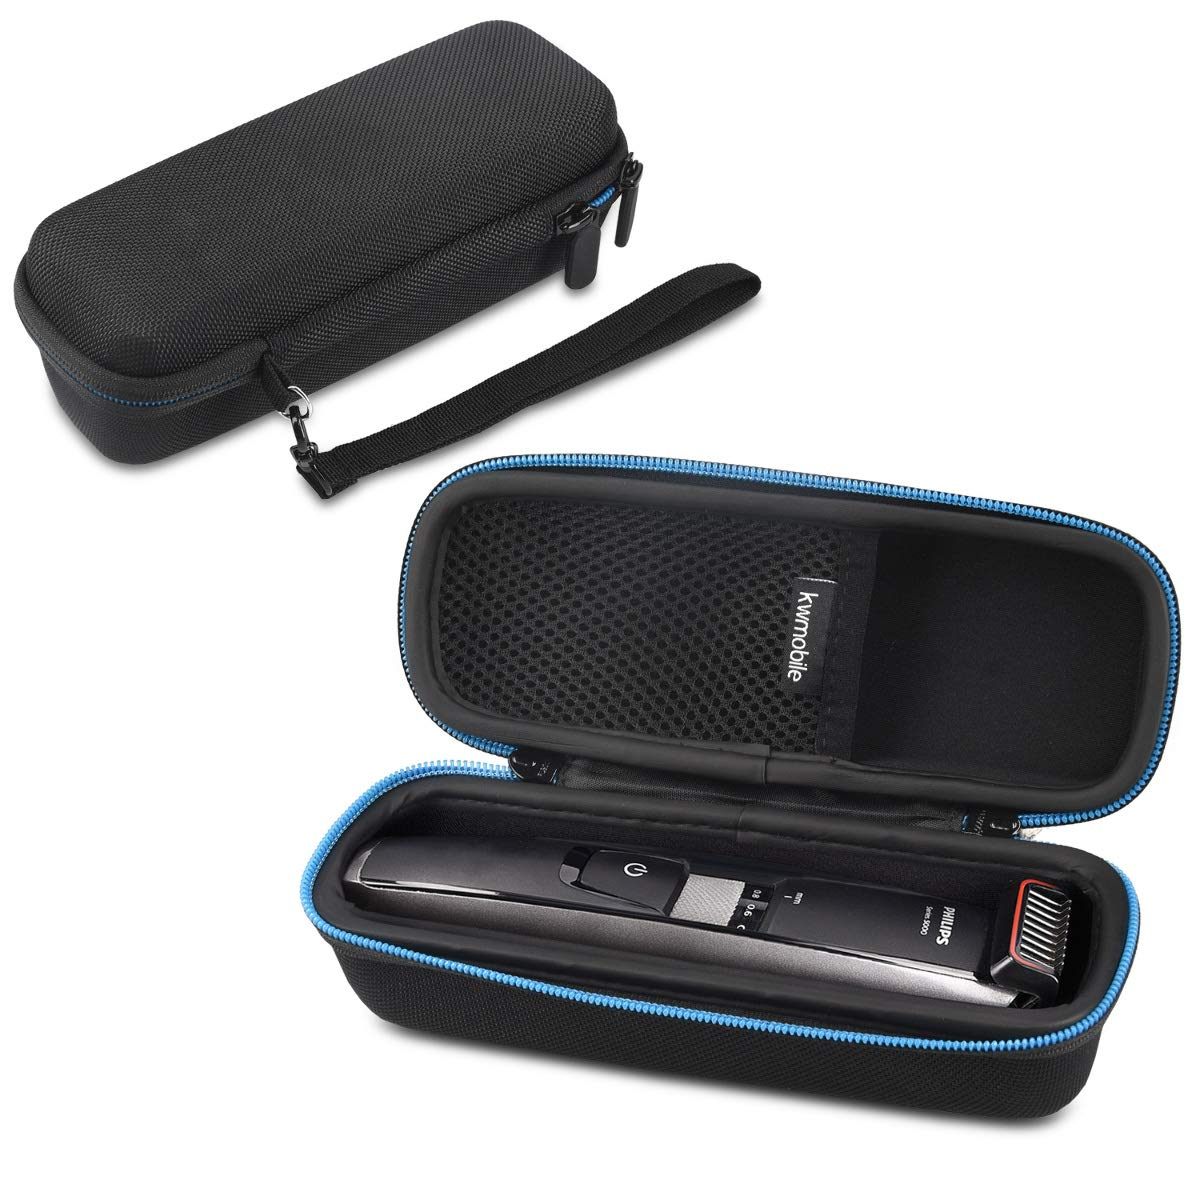 kwmobile Case for Philips beard trimmer Series 5000 7000 9000 - with inner compartment for power supply - protection case for Philips trimmer razor - black KW-Commerce 44021_m000765